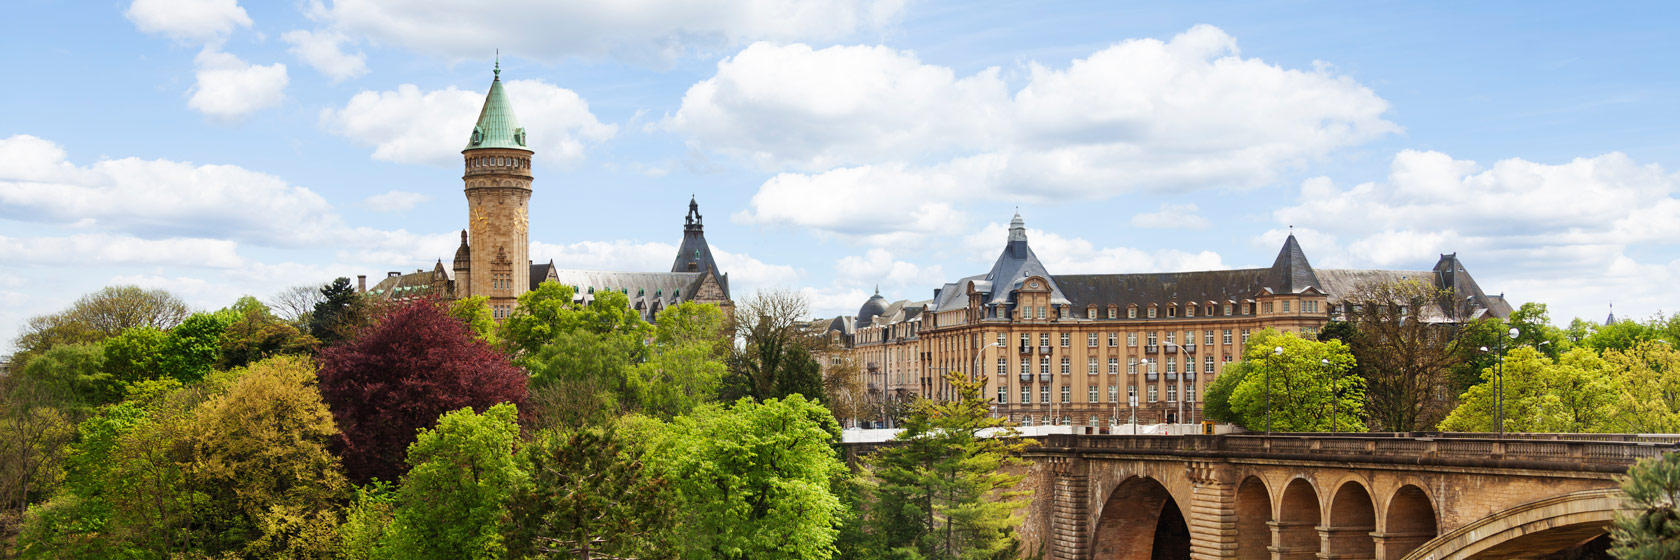 rundrejse-trier-mosel-luxembourg